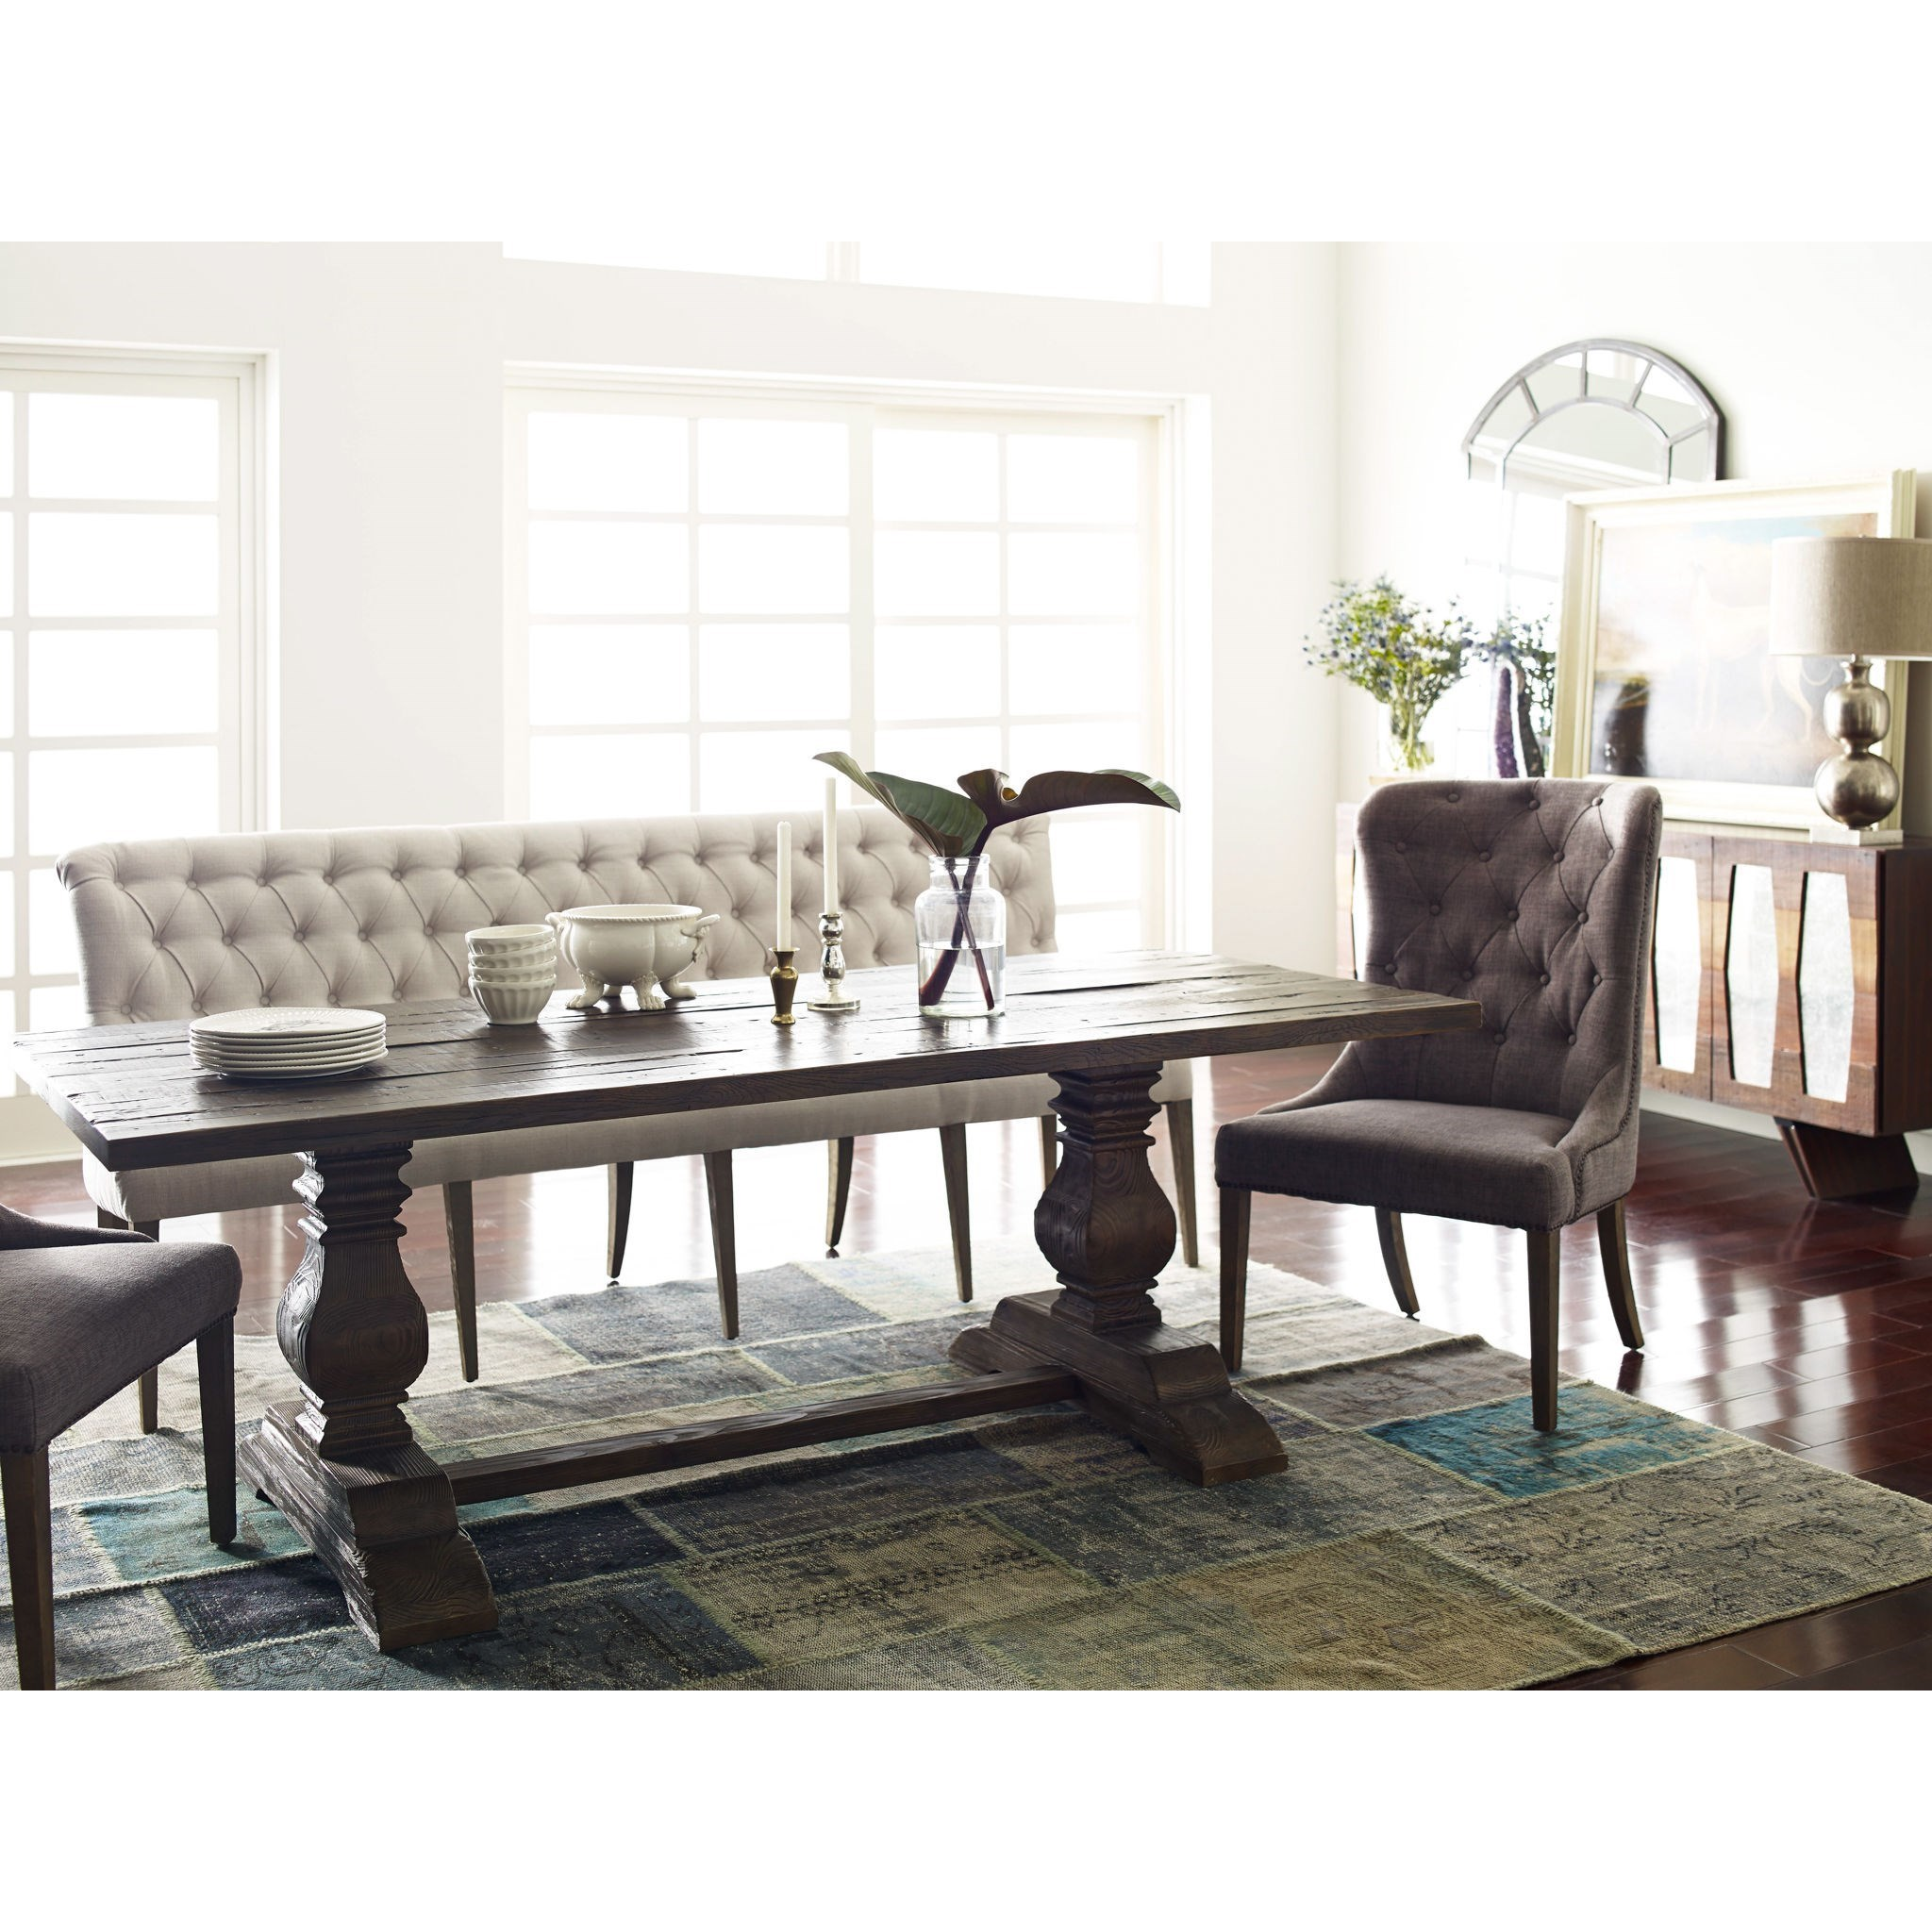 Andrea French Country Tufted Sand Long Dining Bench Banquette: Four Hands Kensington CBBS Eloise Dining Chair With